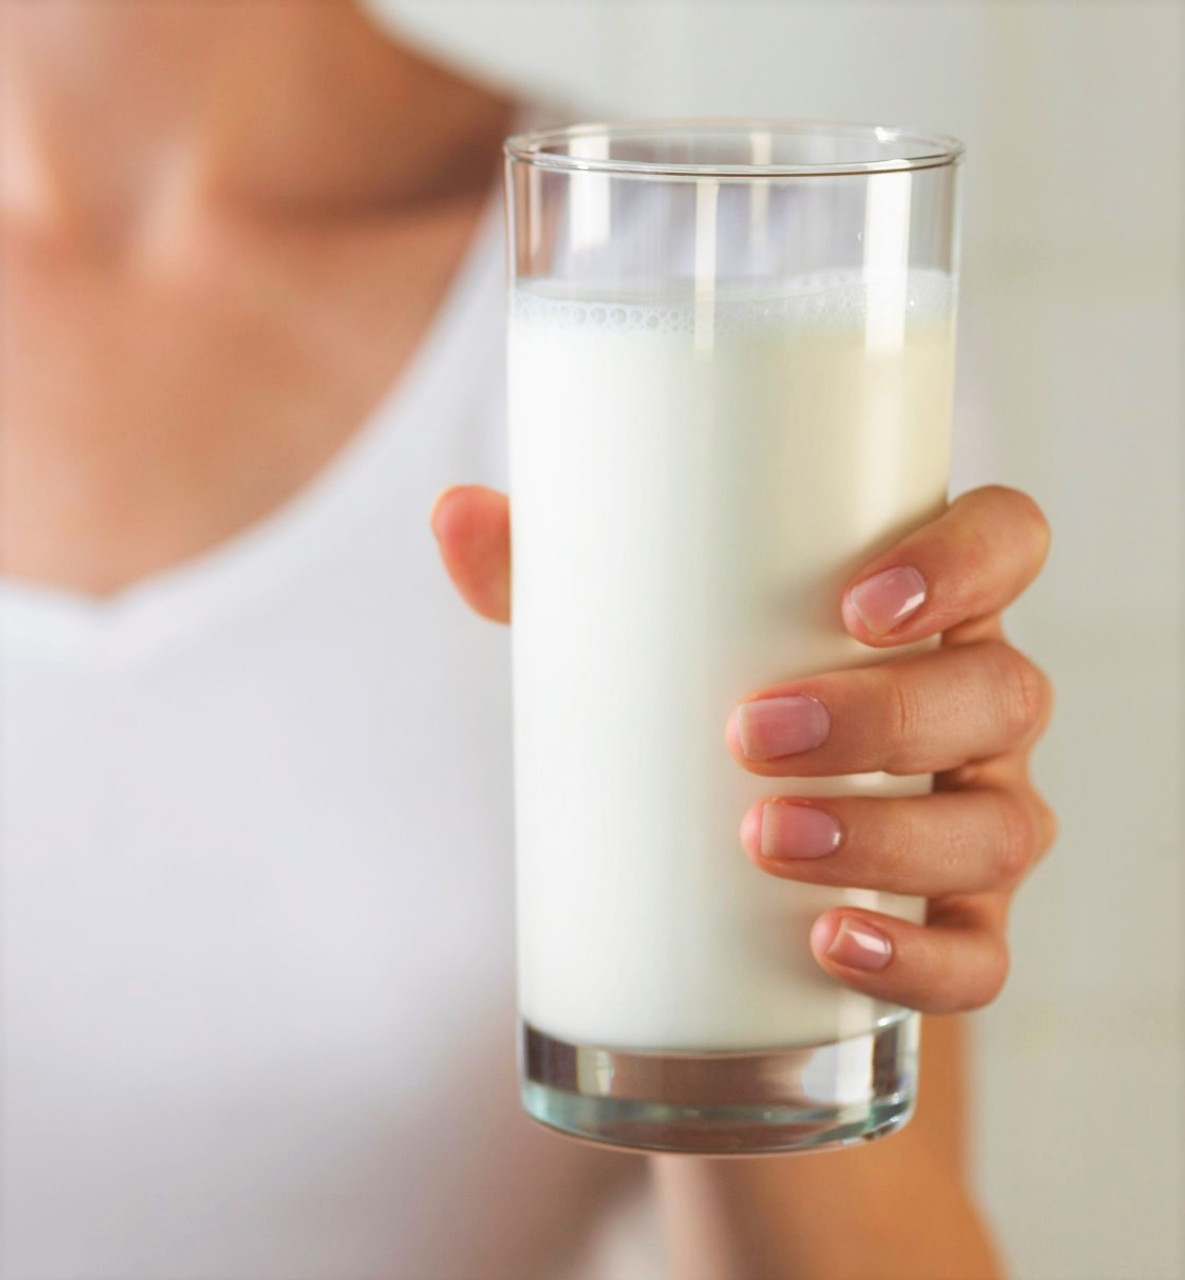 NEW  Modern Wonder Glass - TALL - The milk magically drinks itself! Must have utility prop